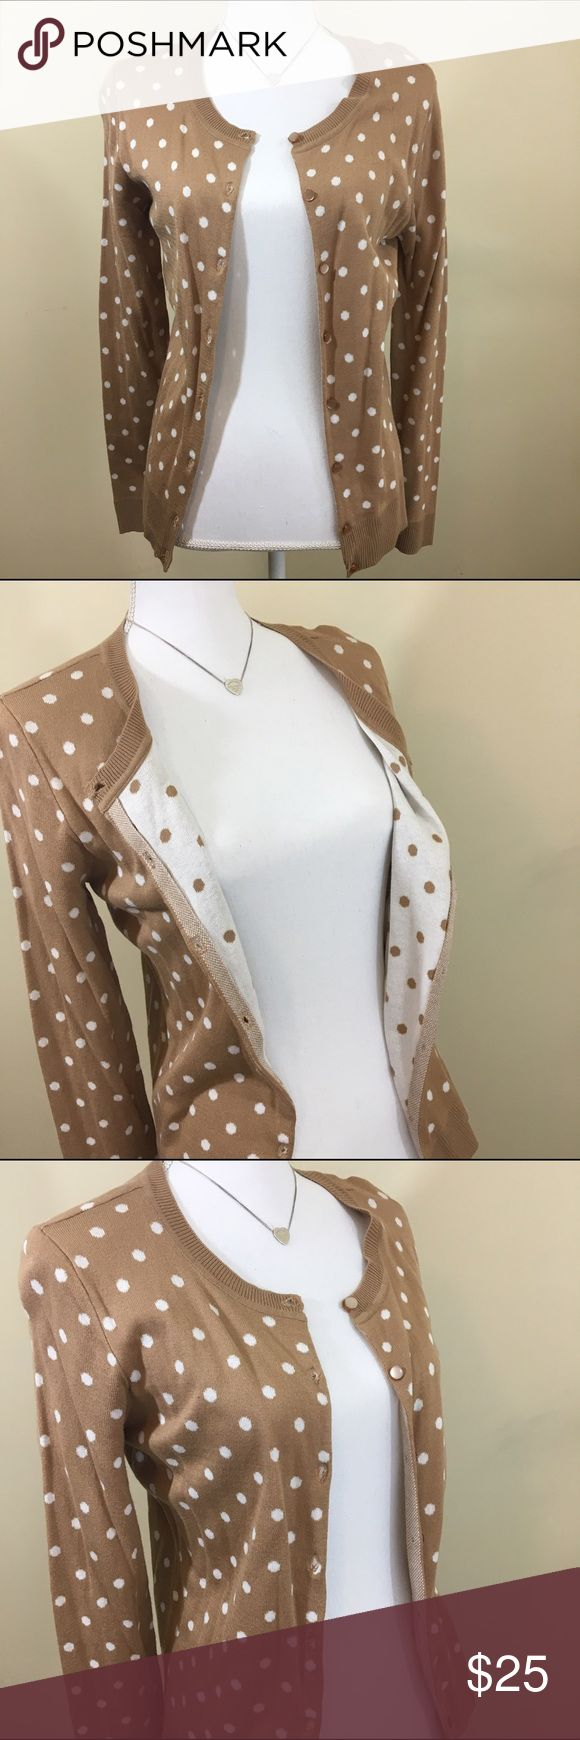 NY&Company Polka Dot Cardigan Beautiful tan polka dot Cardigan from NY&C. NWT! Inside has reverse colors. Beautiful & elegant. Perfect for business casual or going out! New York & Company Tops Sweatshirts & Hoodies